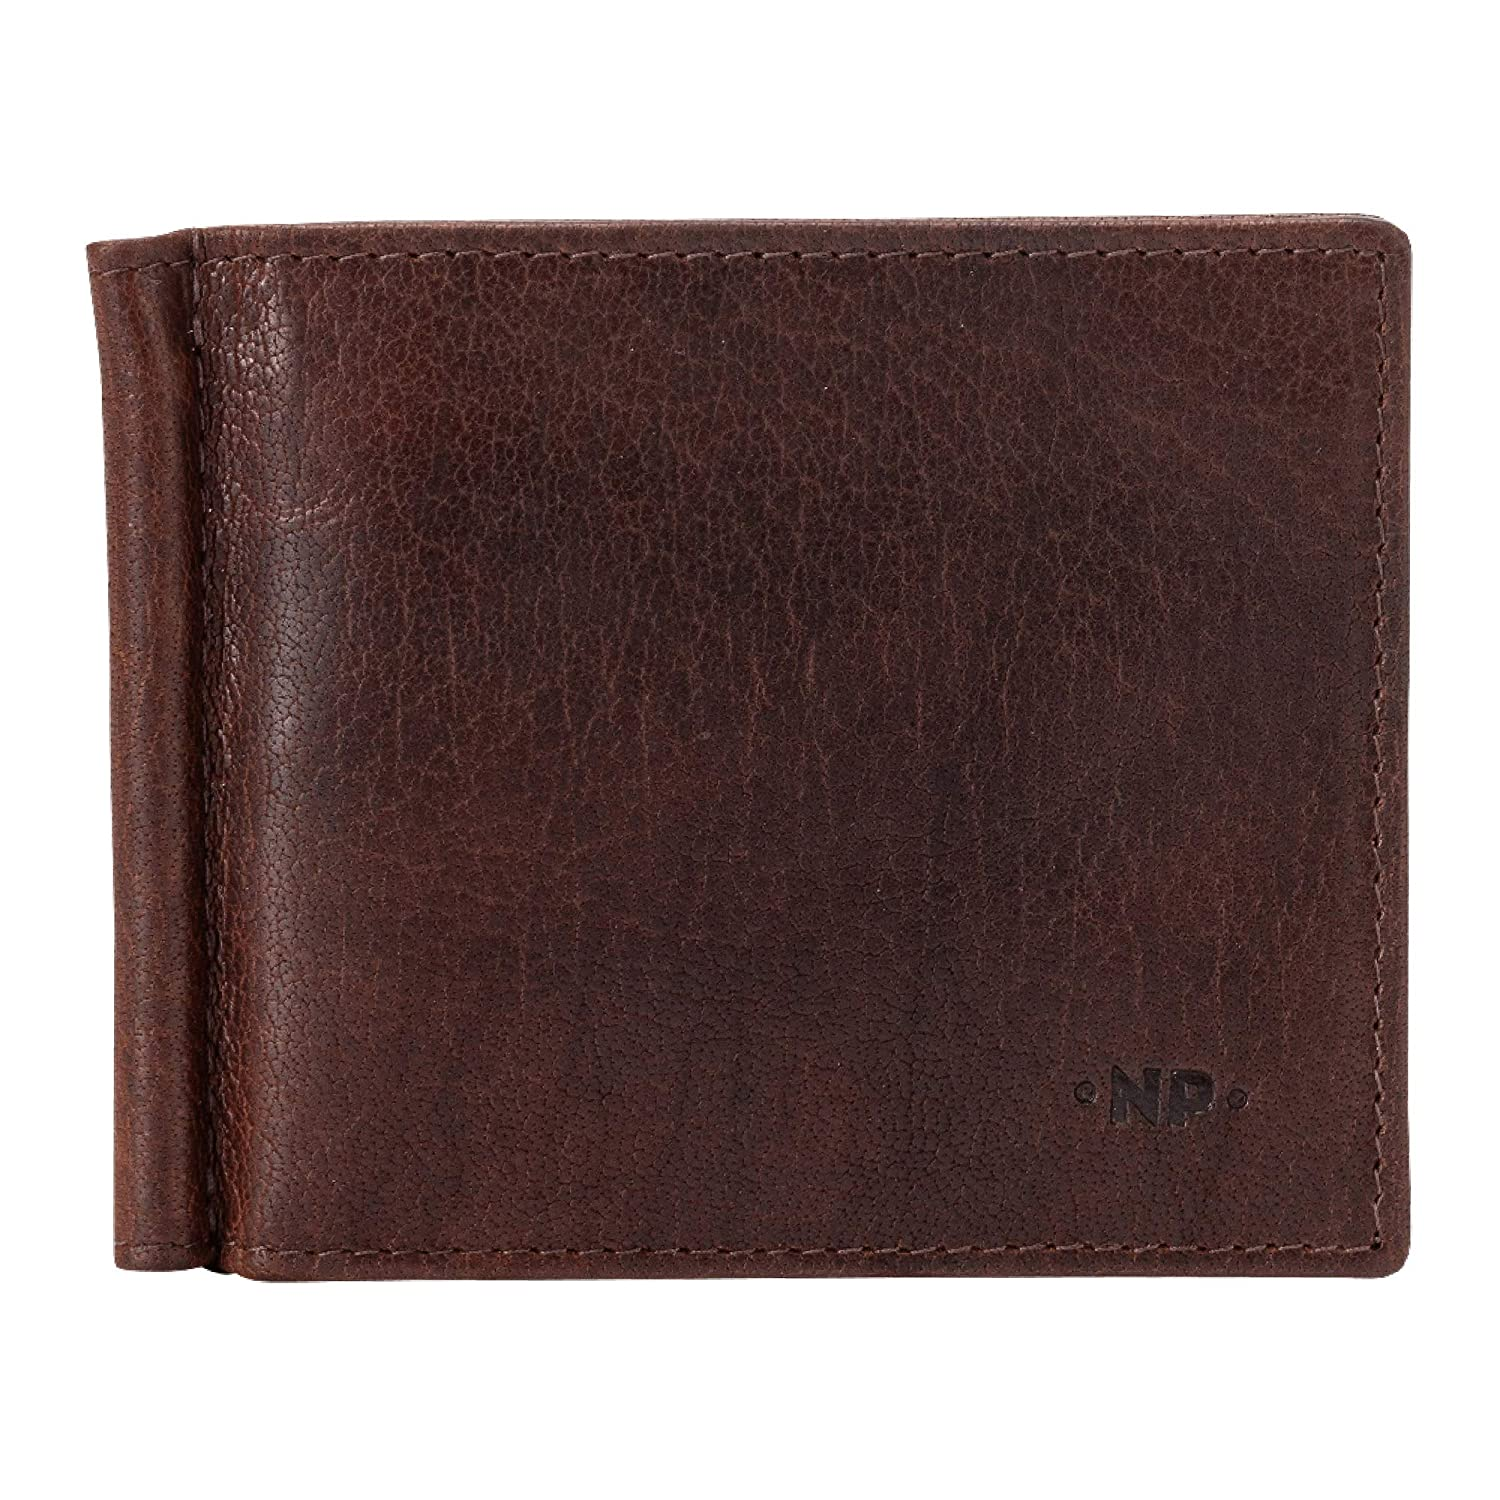 Nuvola Pelle Slim Mens Leather Money Clip Wallet Minimalist with 8 Credit Card Pockets Brown